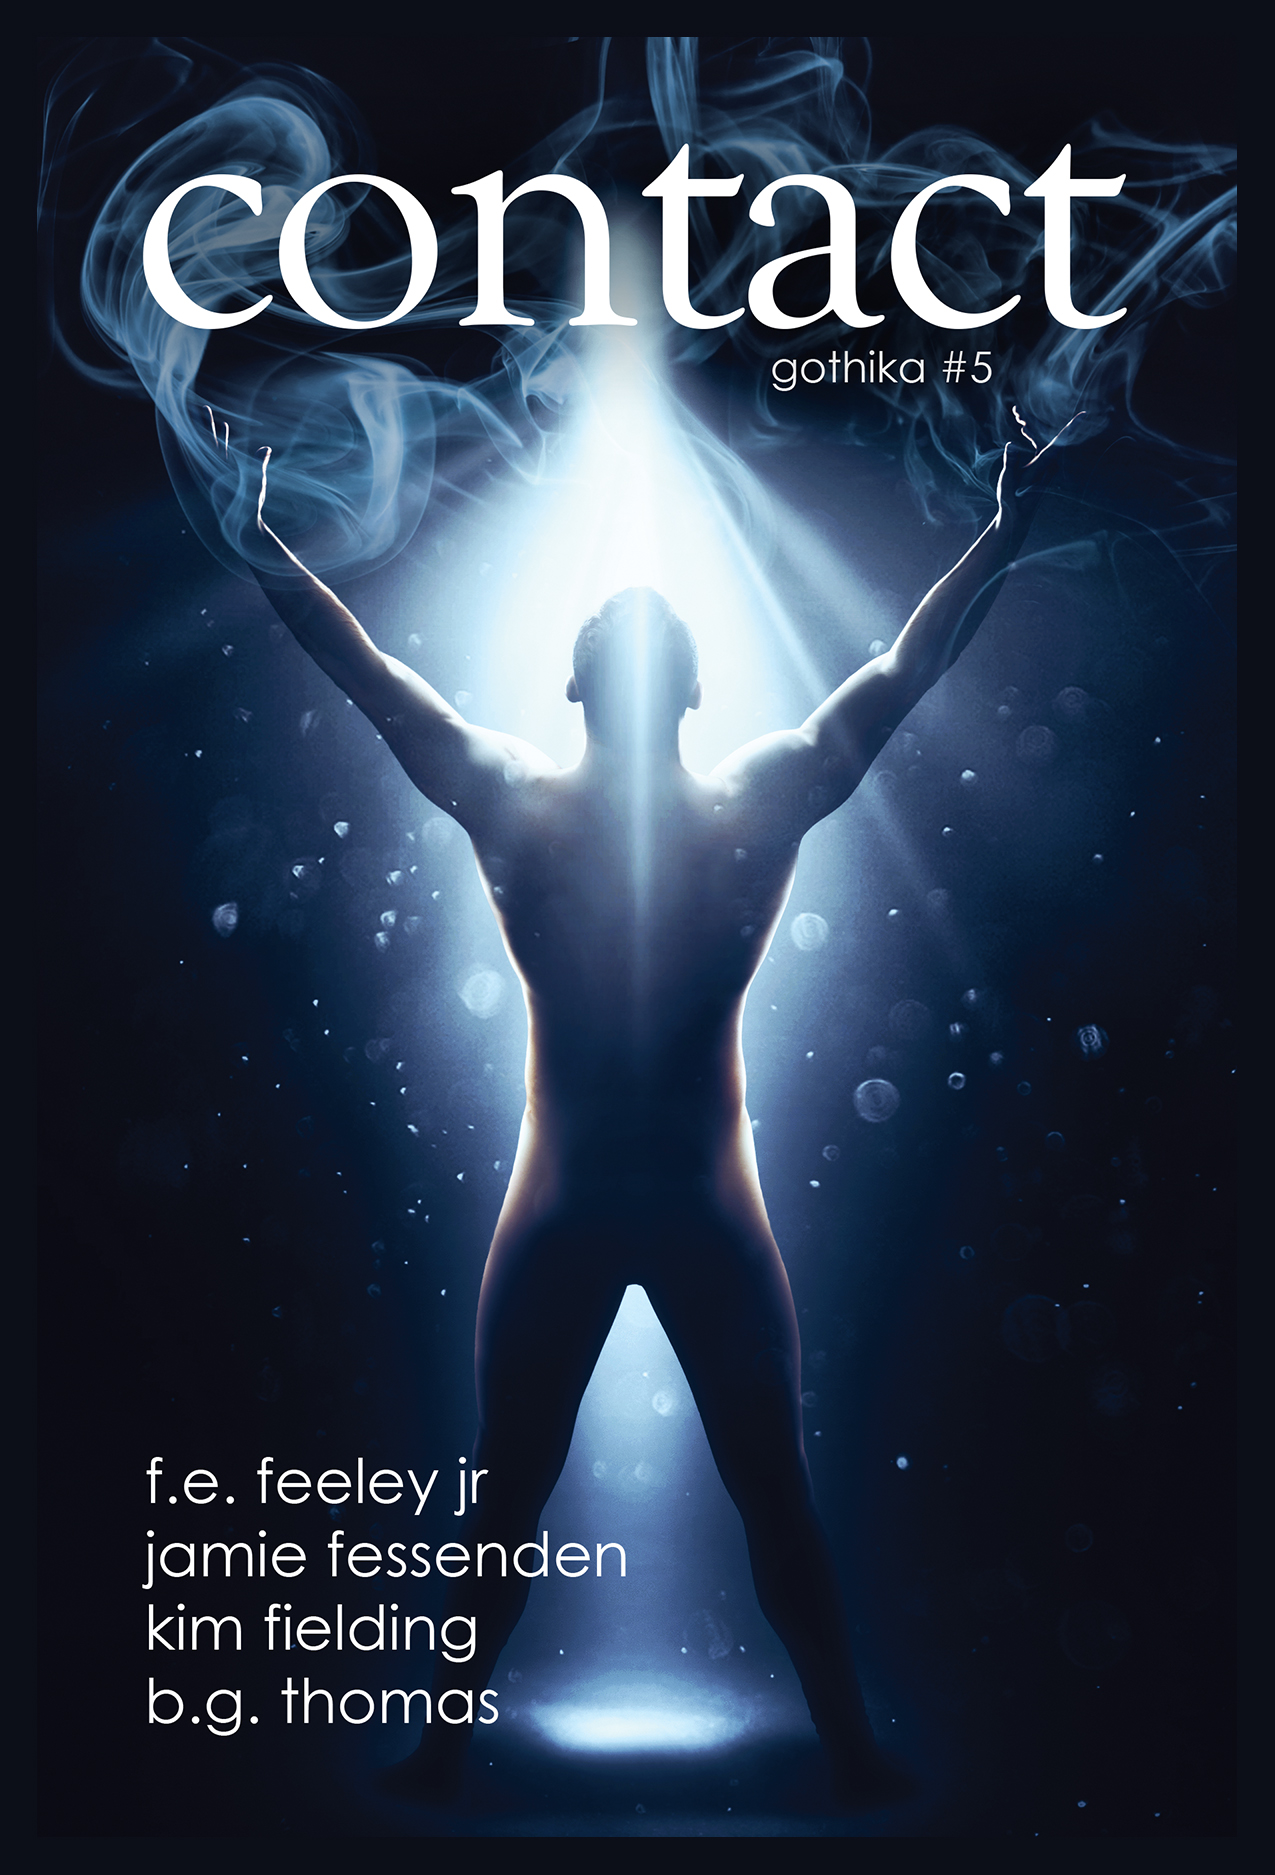 Contact (Gothika #5) by Kim Fielding, B.G. Thomas, F.E. Feeley Jr., and B.G. Thomas